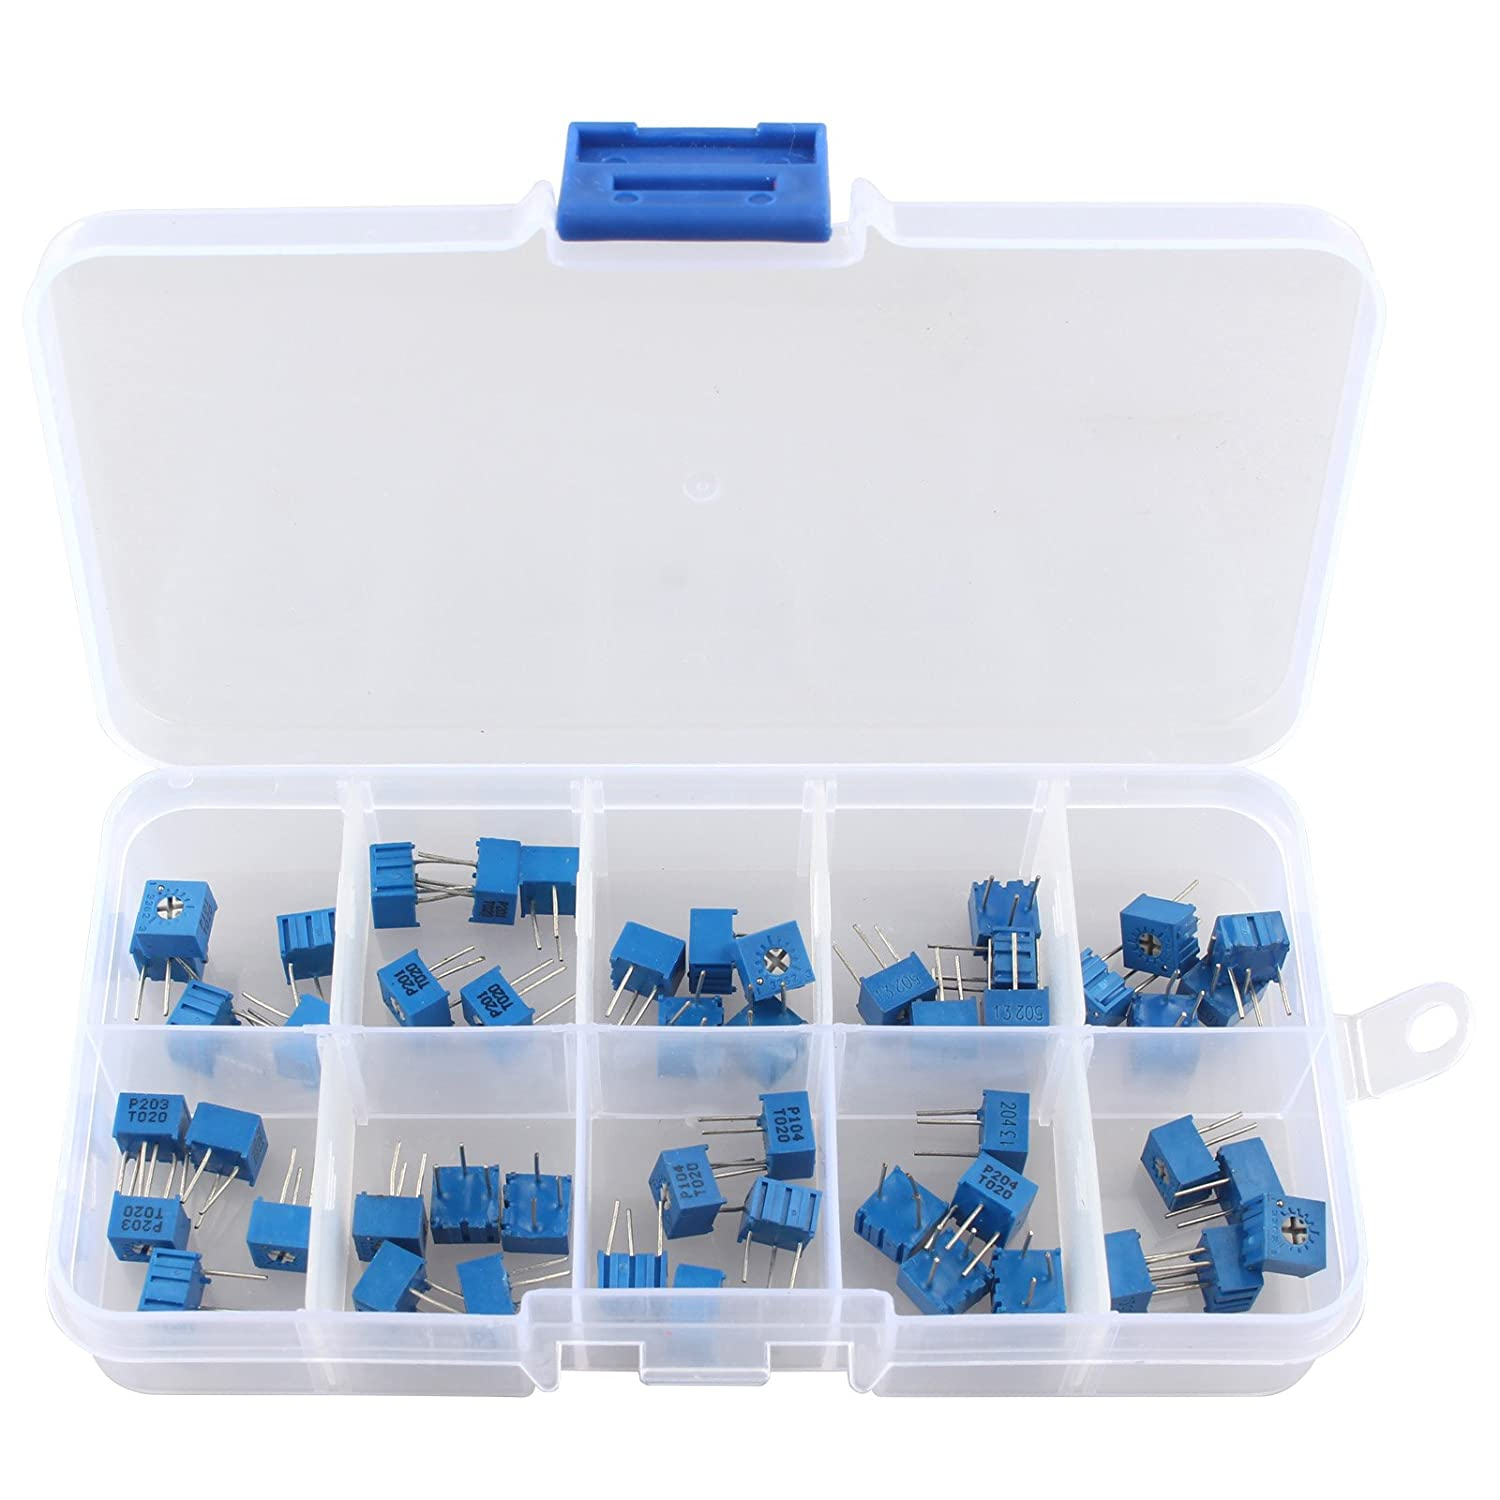 HALJIA 50PCS 10Value 100 ohm to 1M ohm 3362 Multiturn Trimmer Potentiometer Assorted Kit Variable Resistor with Plastci Box